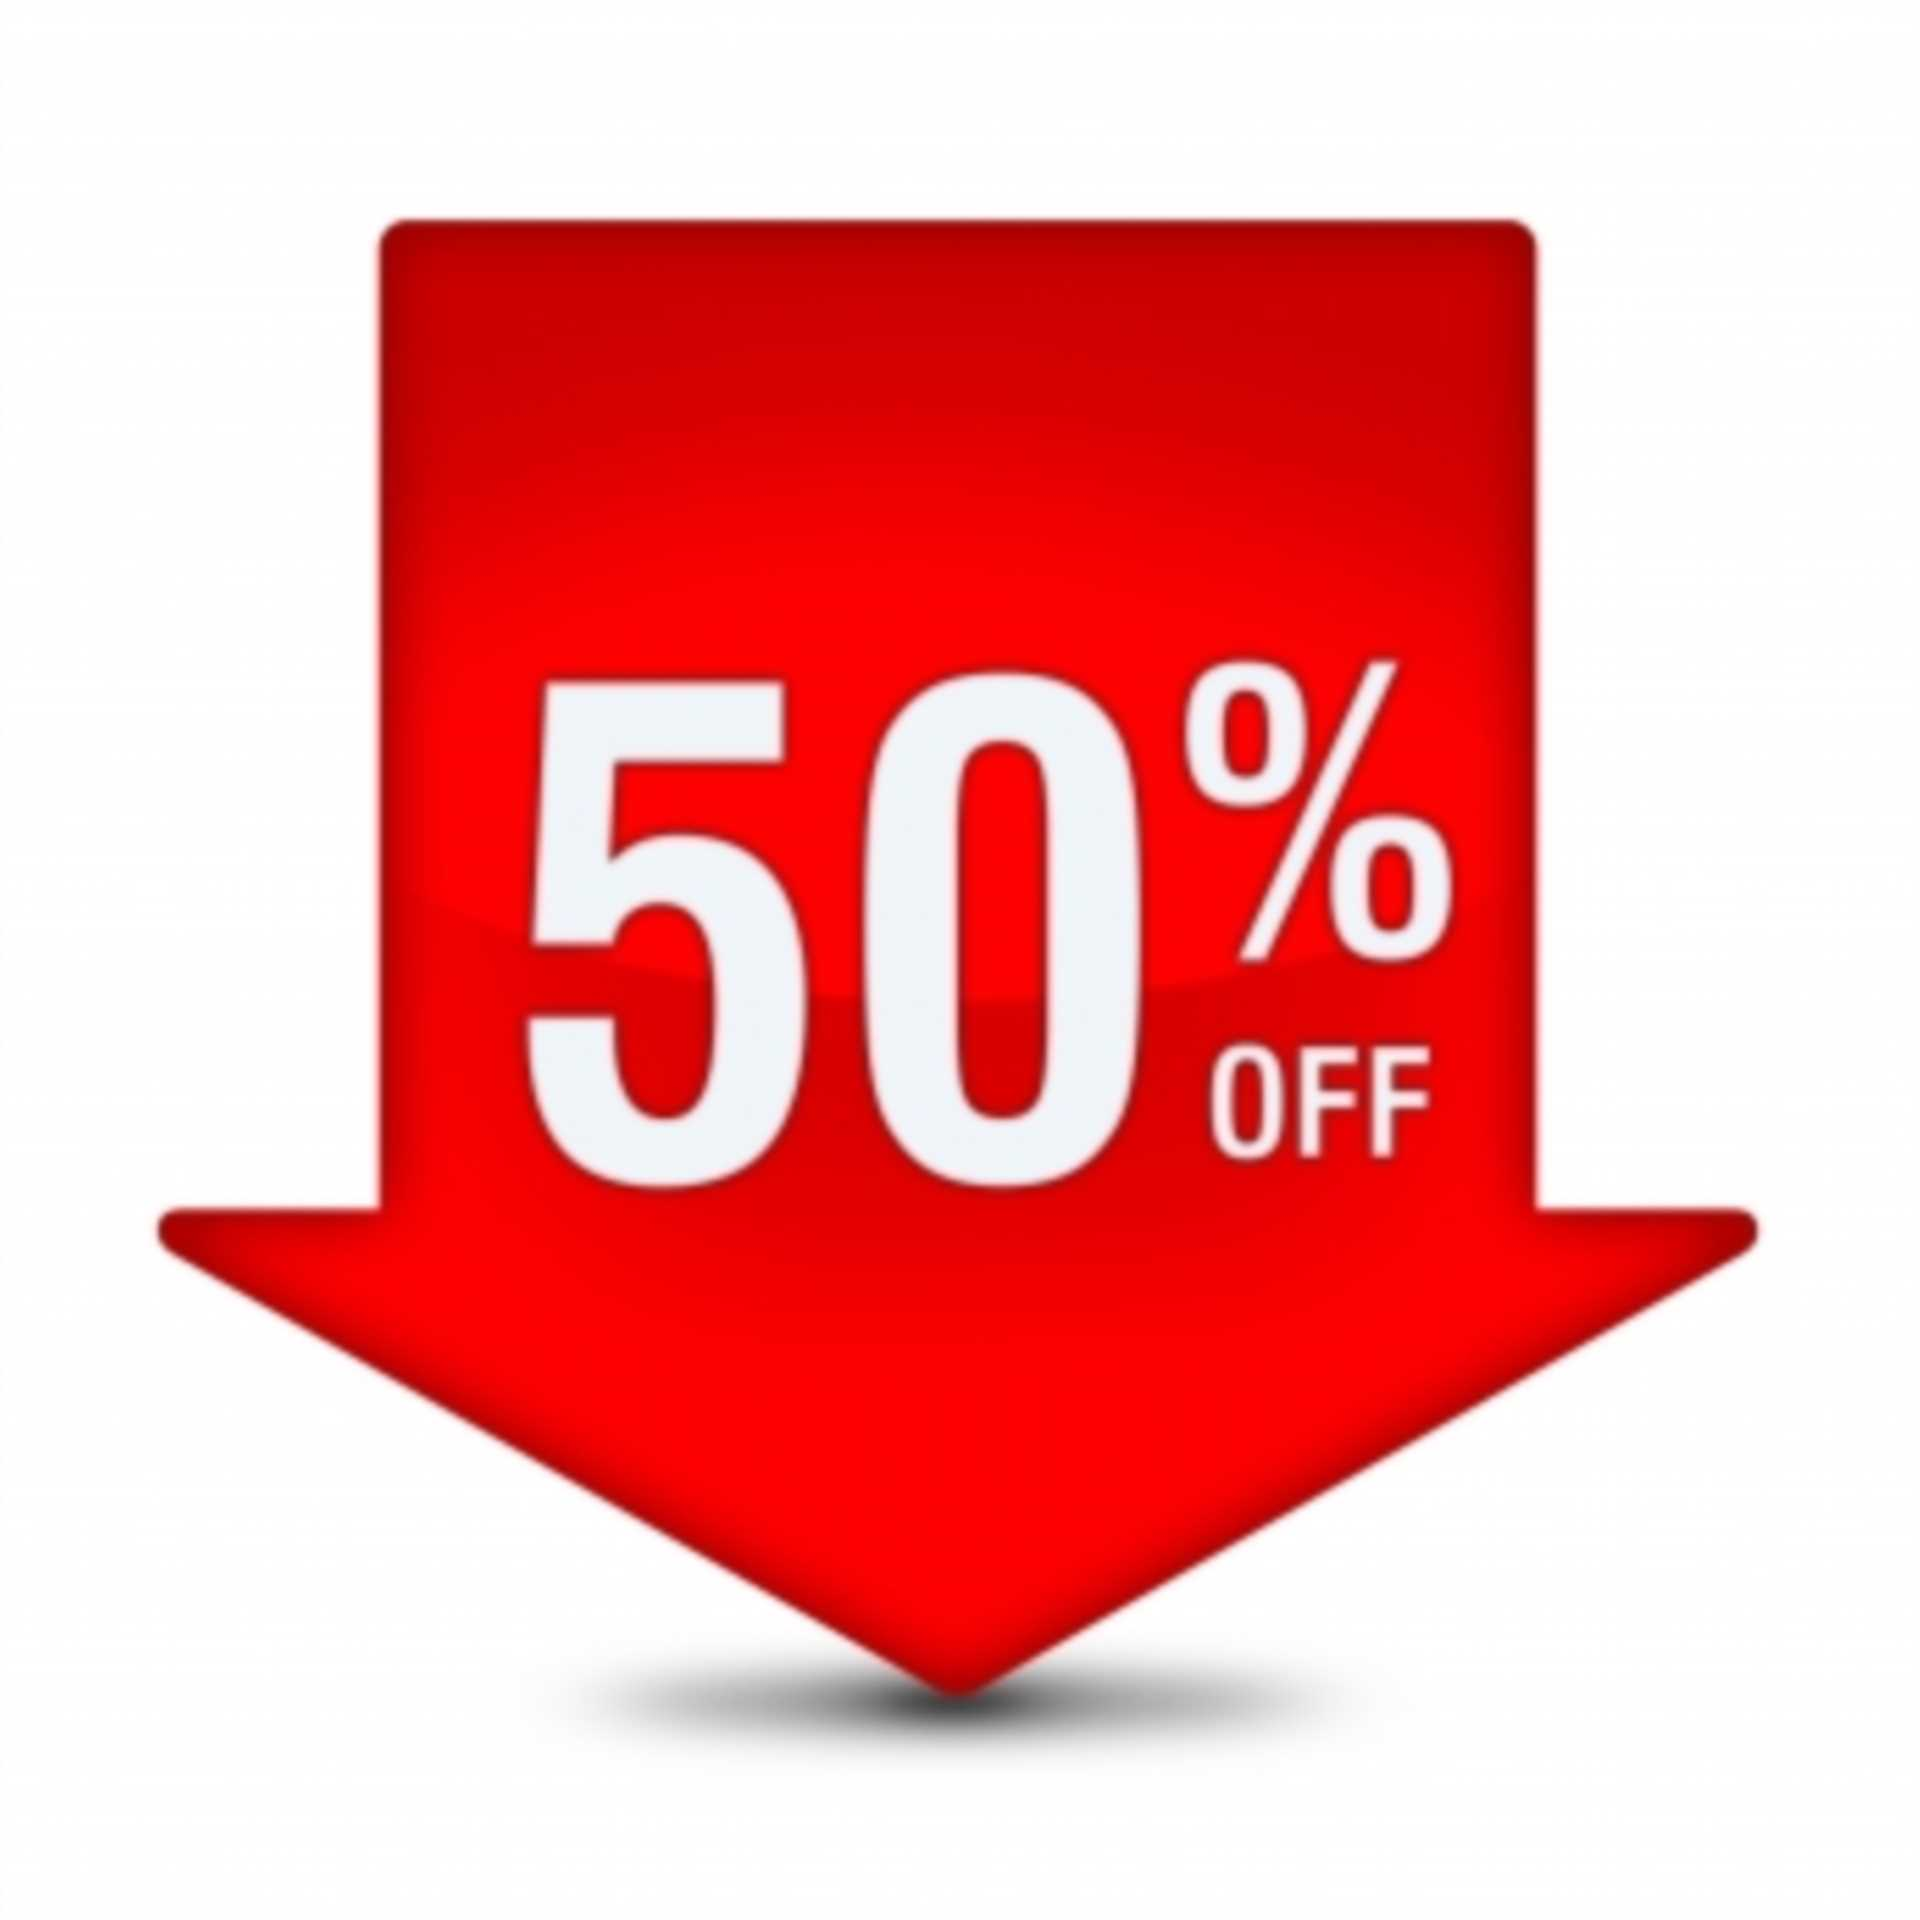 50% Discount Off Selling Fees This Autumn